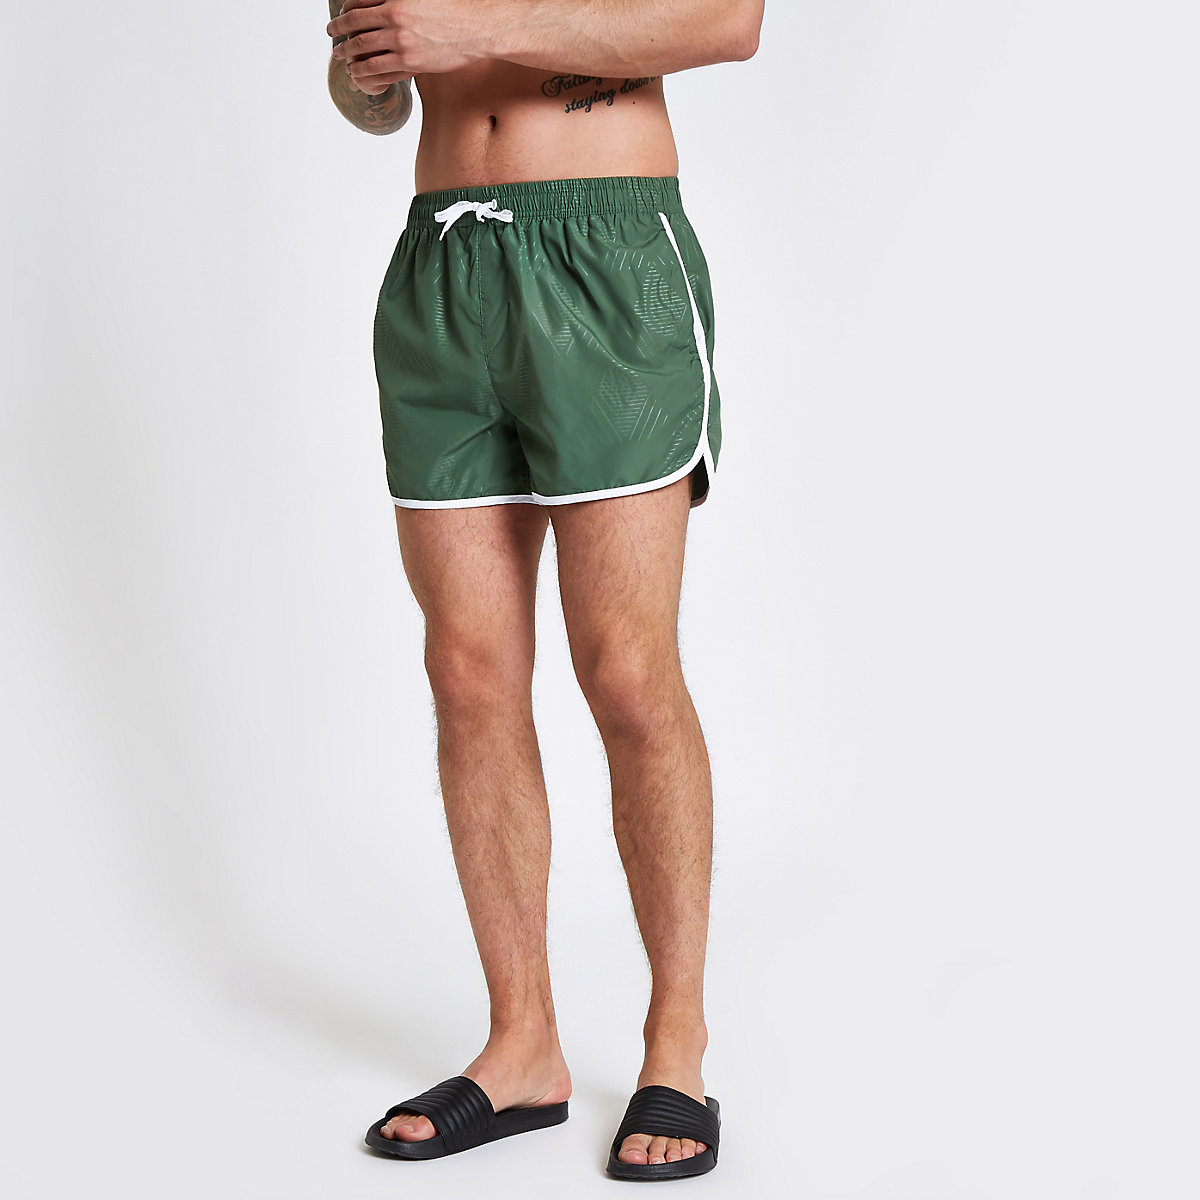 Football Bolt green runner swim shorts